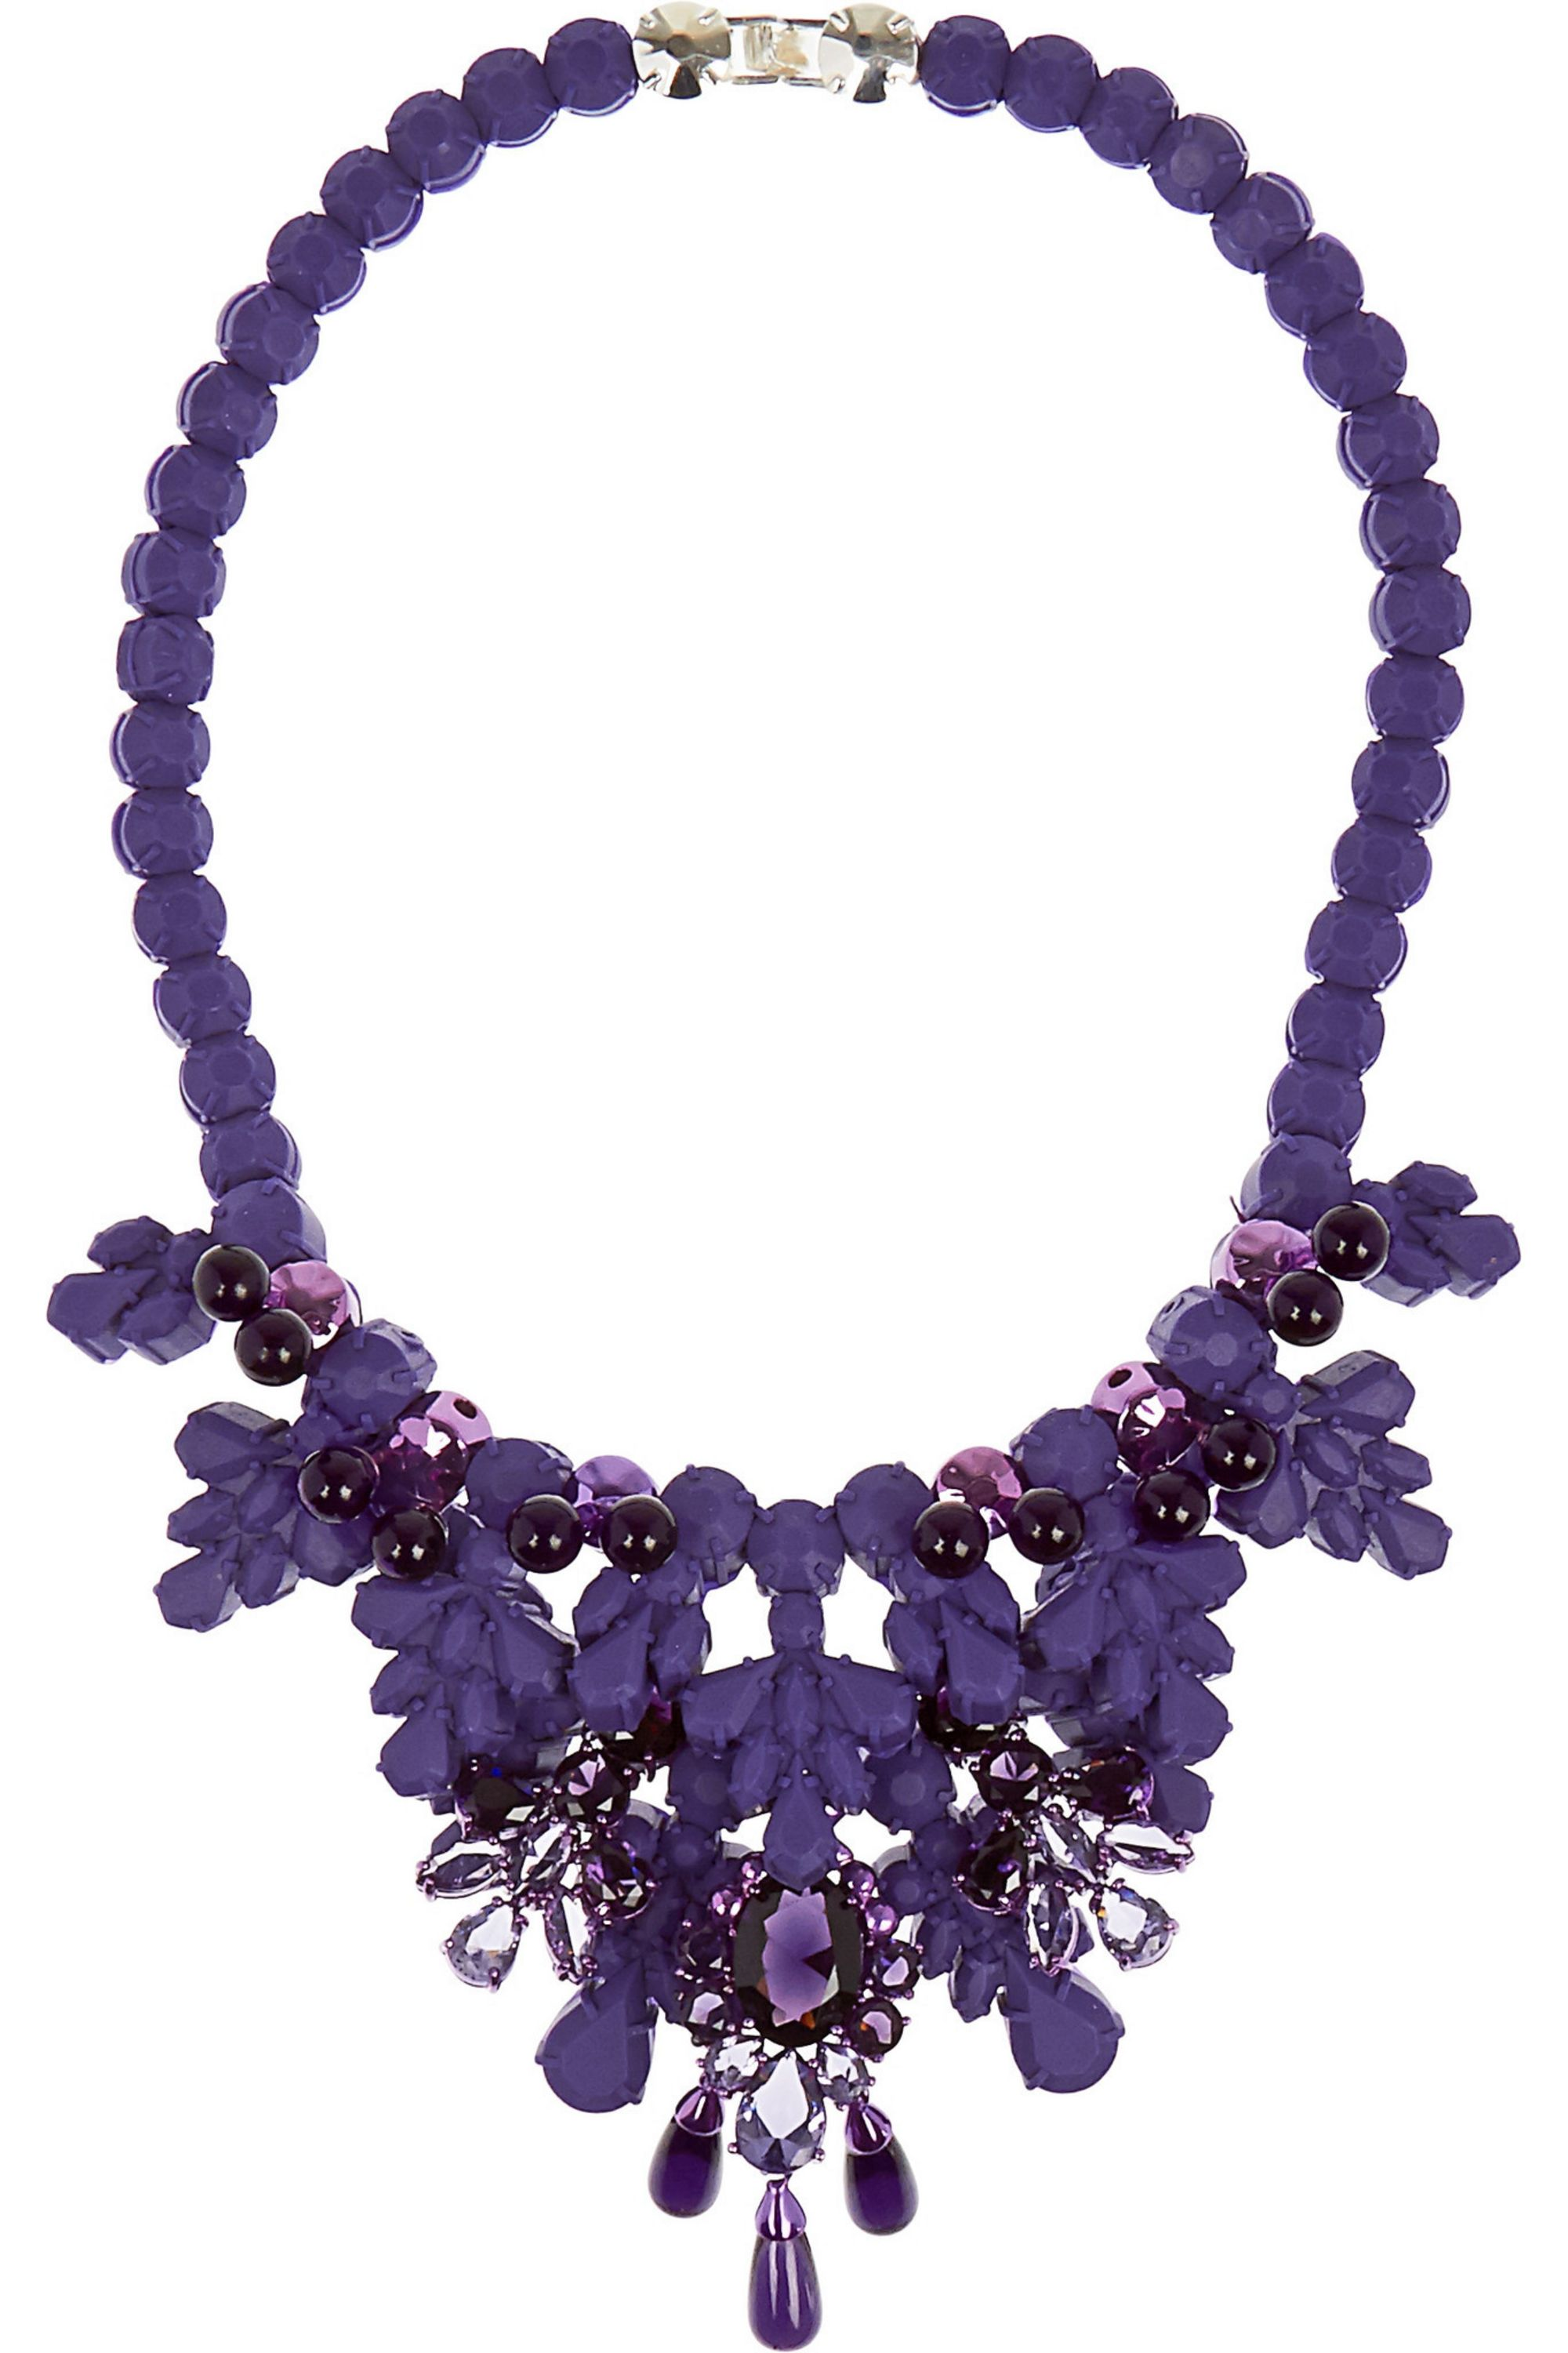 Ek Thongprasert Port de Bras coated brass, silicone and crystal necklace